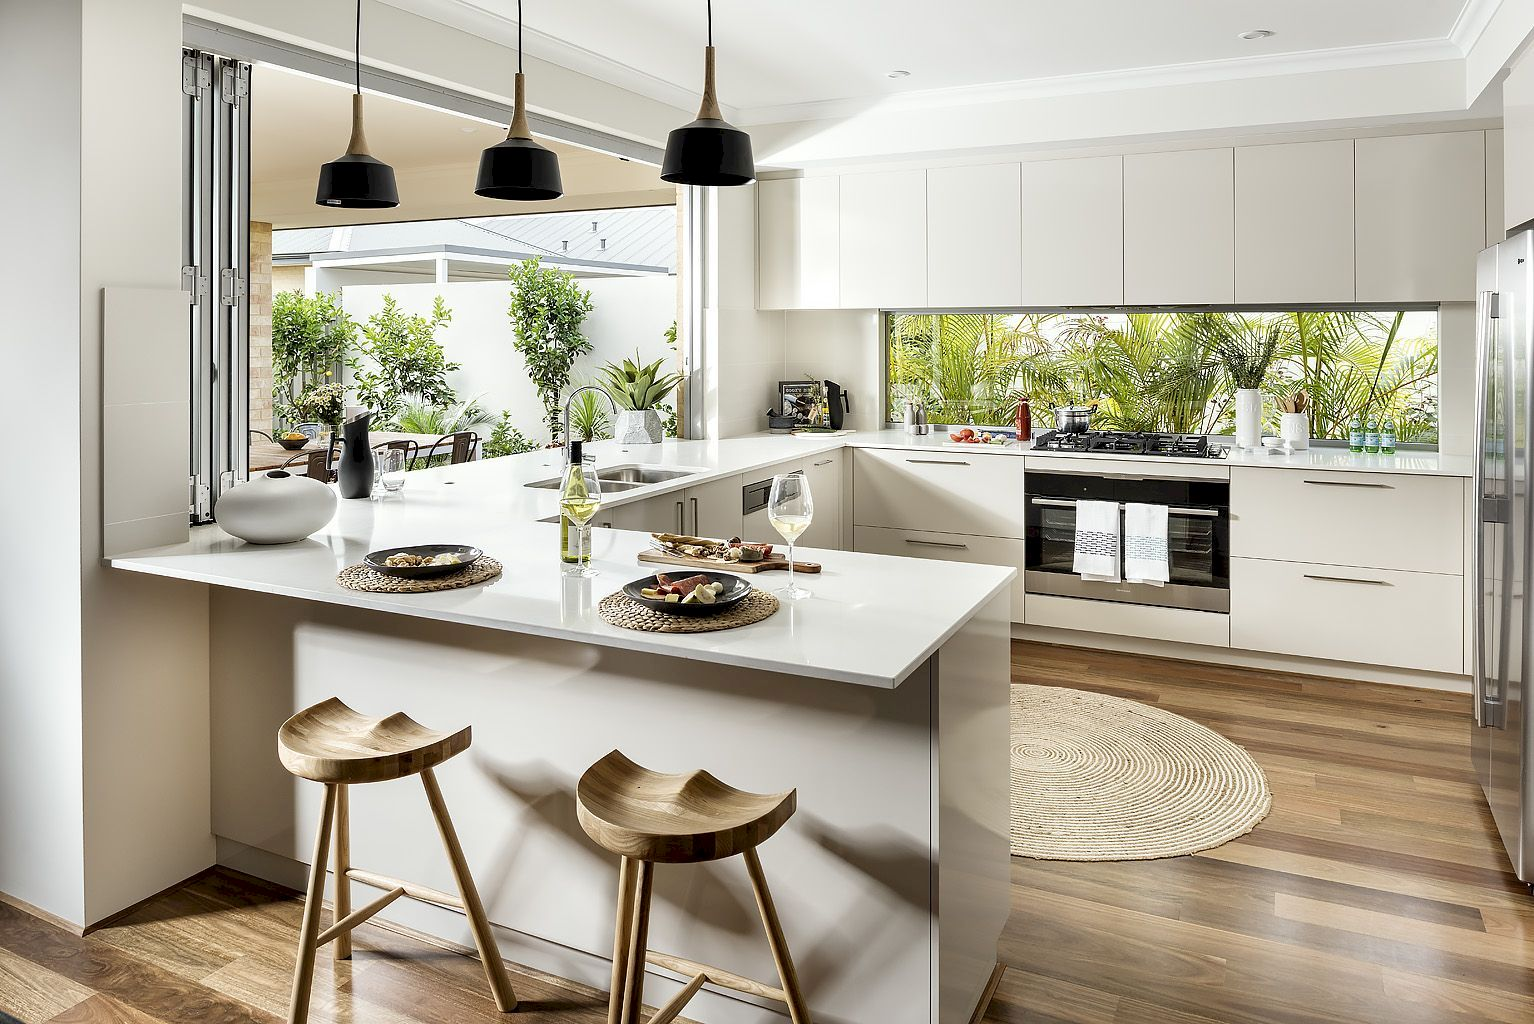 Decorative Kitchen Pendant Design with Modern and Classic Concept Part 26